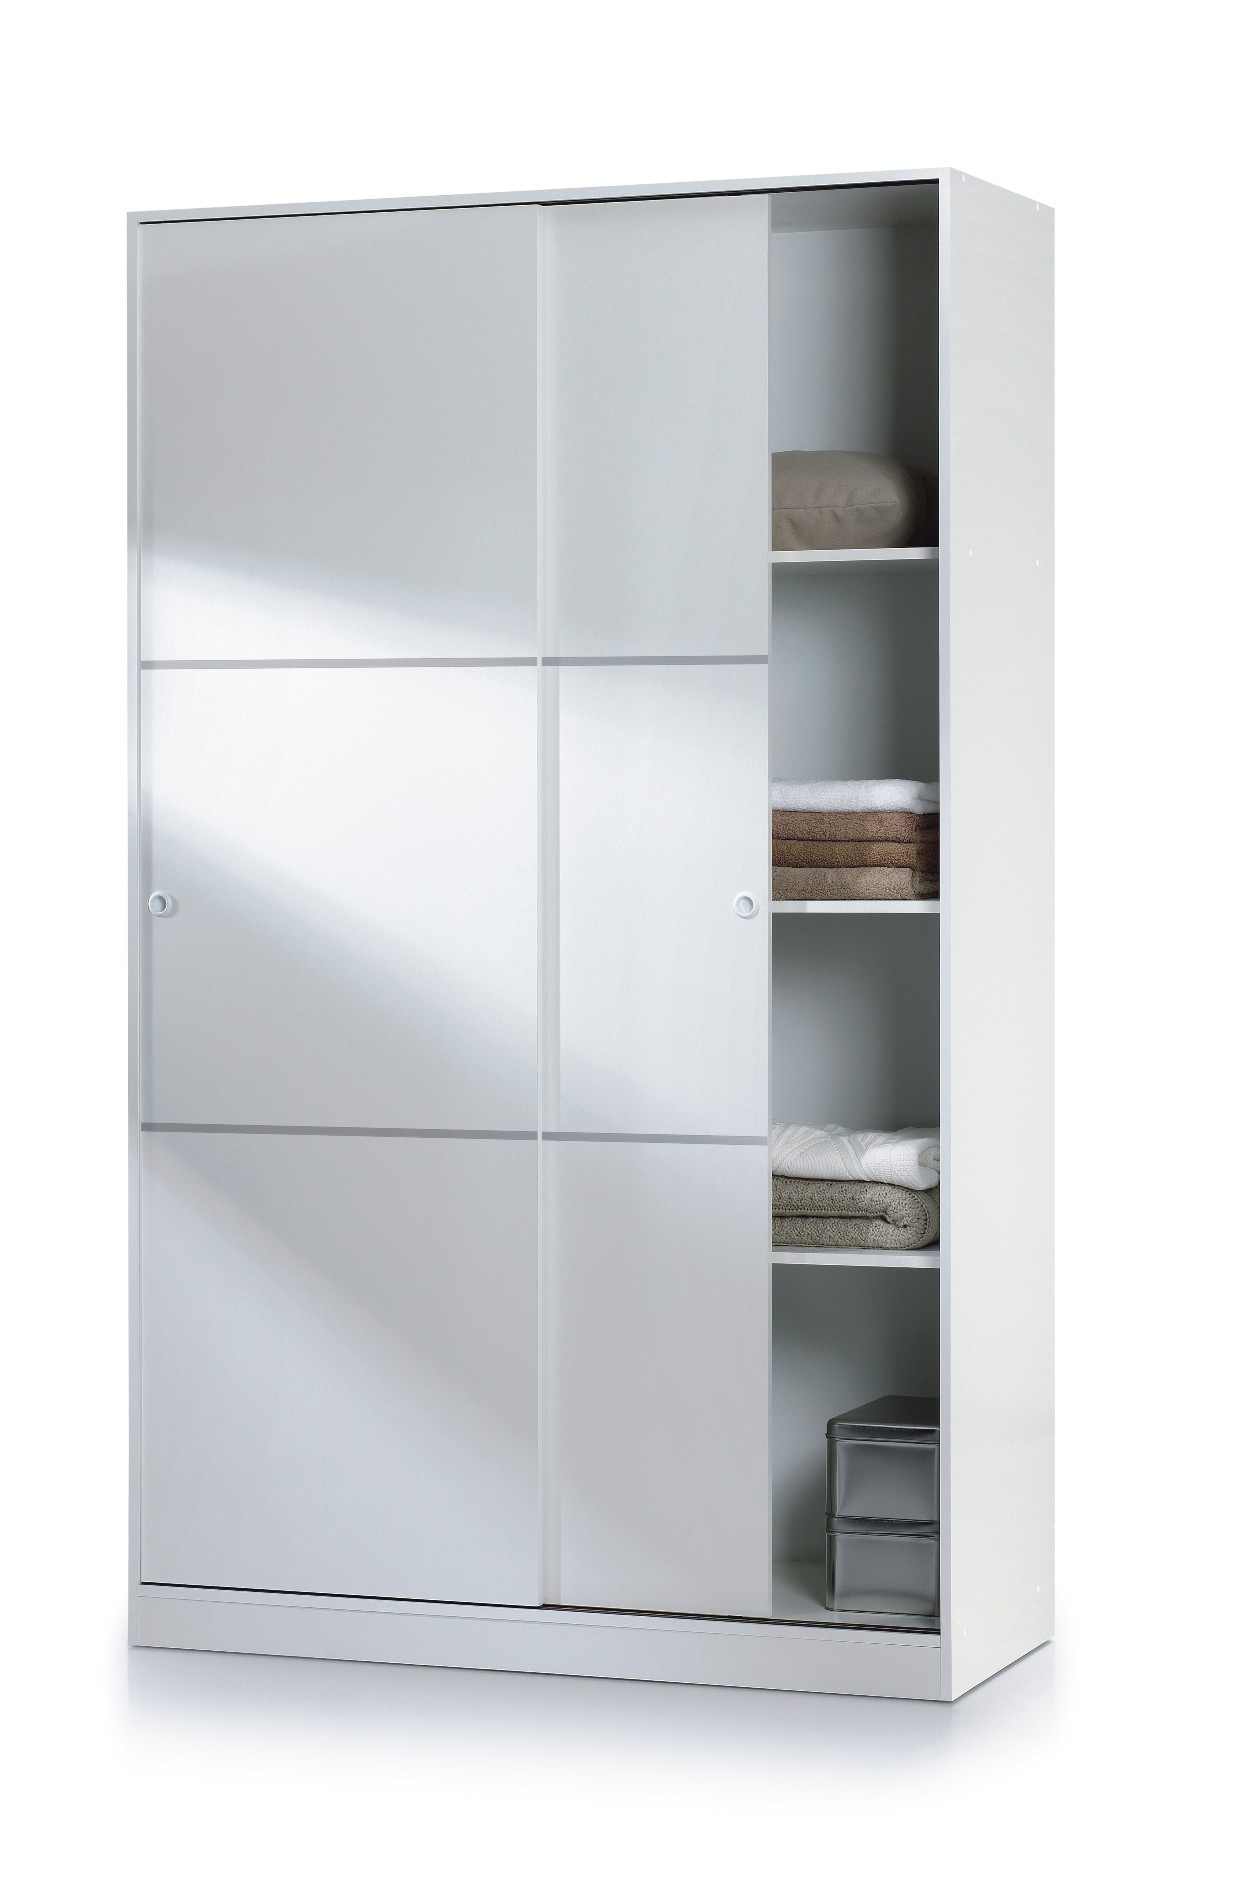 Cheap Wardrobe Sliding Doors Nz Cupboard Design Galleries